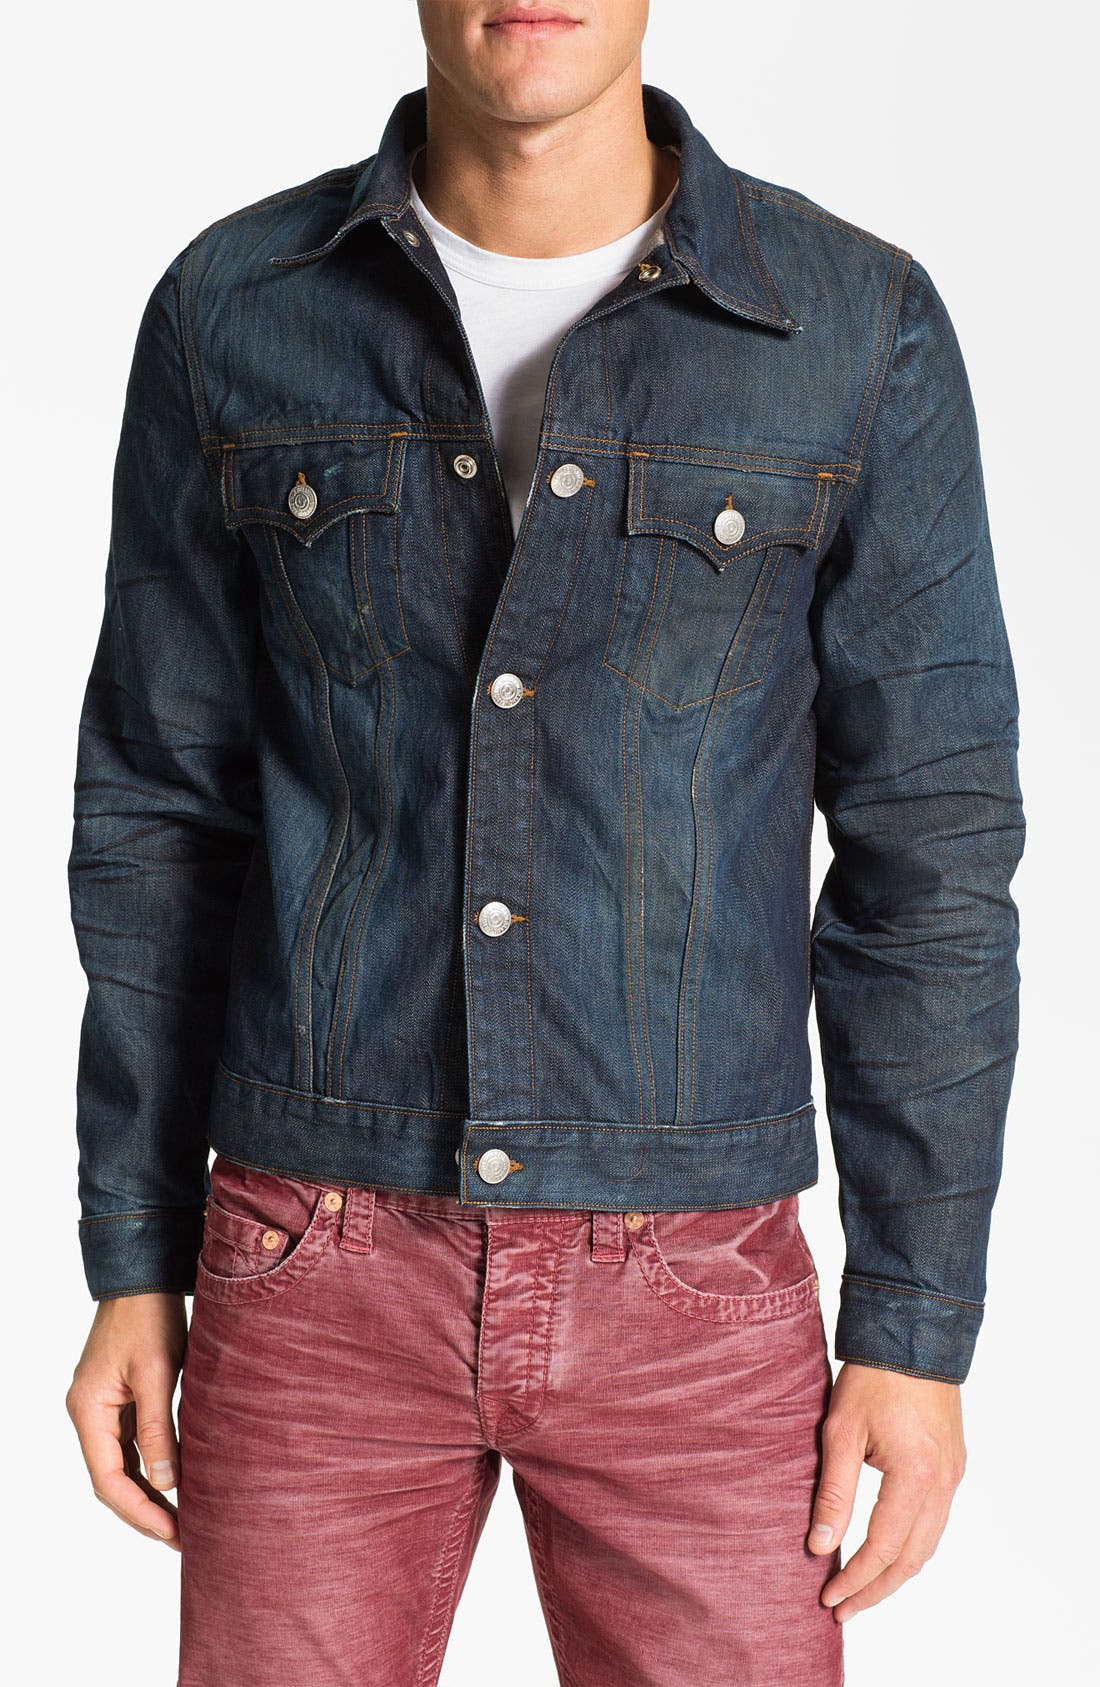 Alternate Image 1 Selected - True Religion Brand Jeans '1971 Jimmy Western Trucker' Denim Jacket